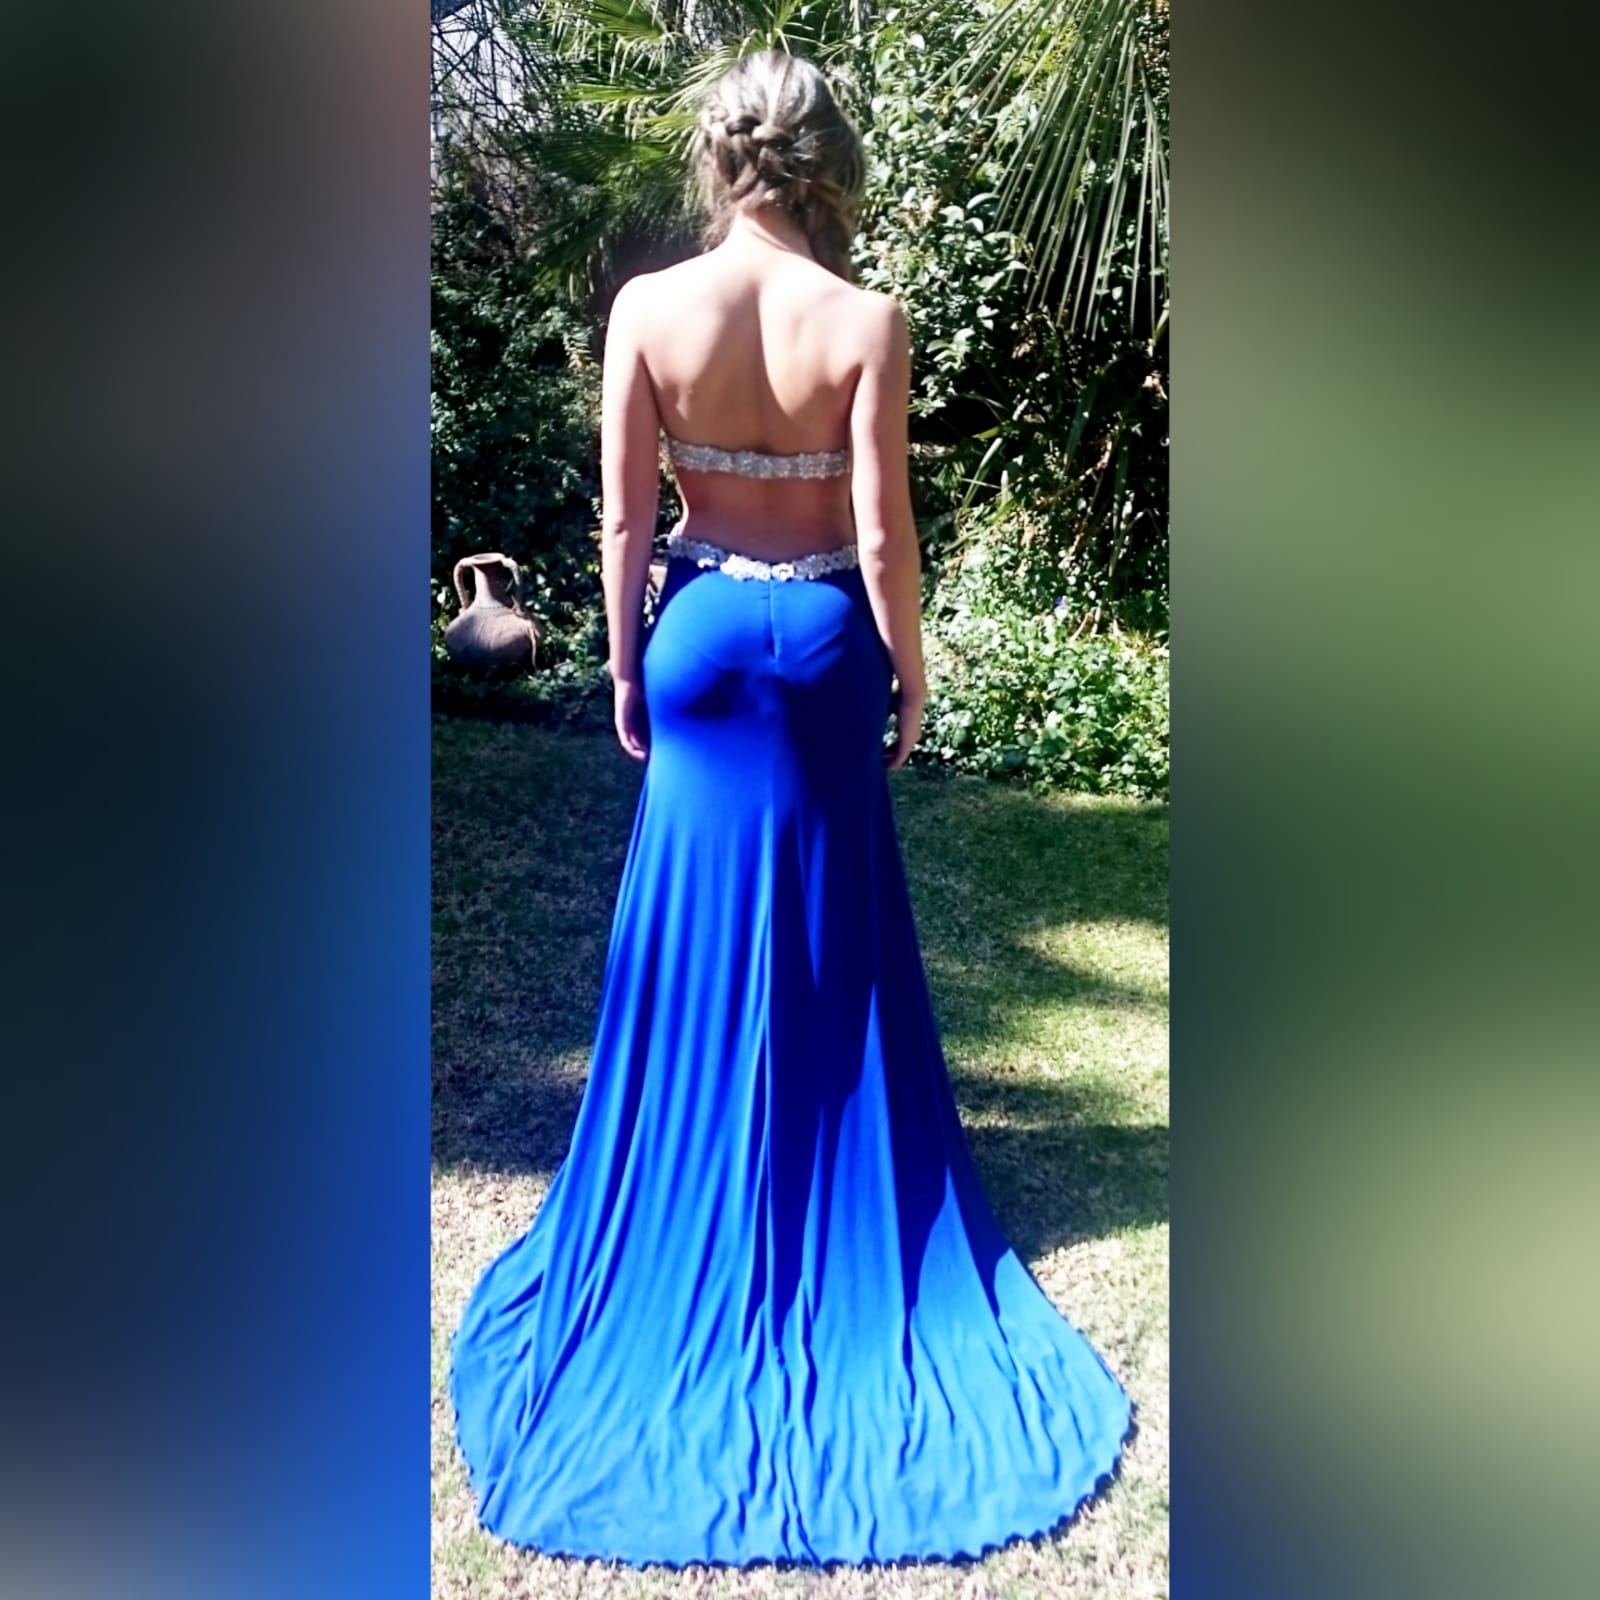 Royal blue and silver sexy ceremony dress 1 royal blue and silver sexy ceremony dress. Designed and made for a prom dance. With a lace and beaded boobtube bodice, a naked back and flowy bottom with a slit and a train.